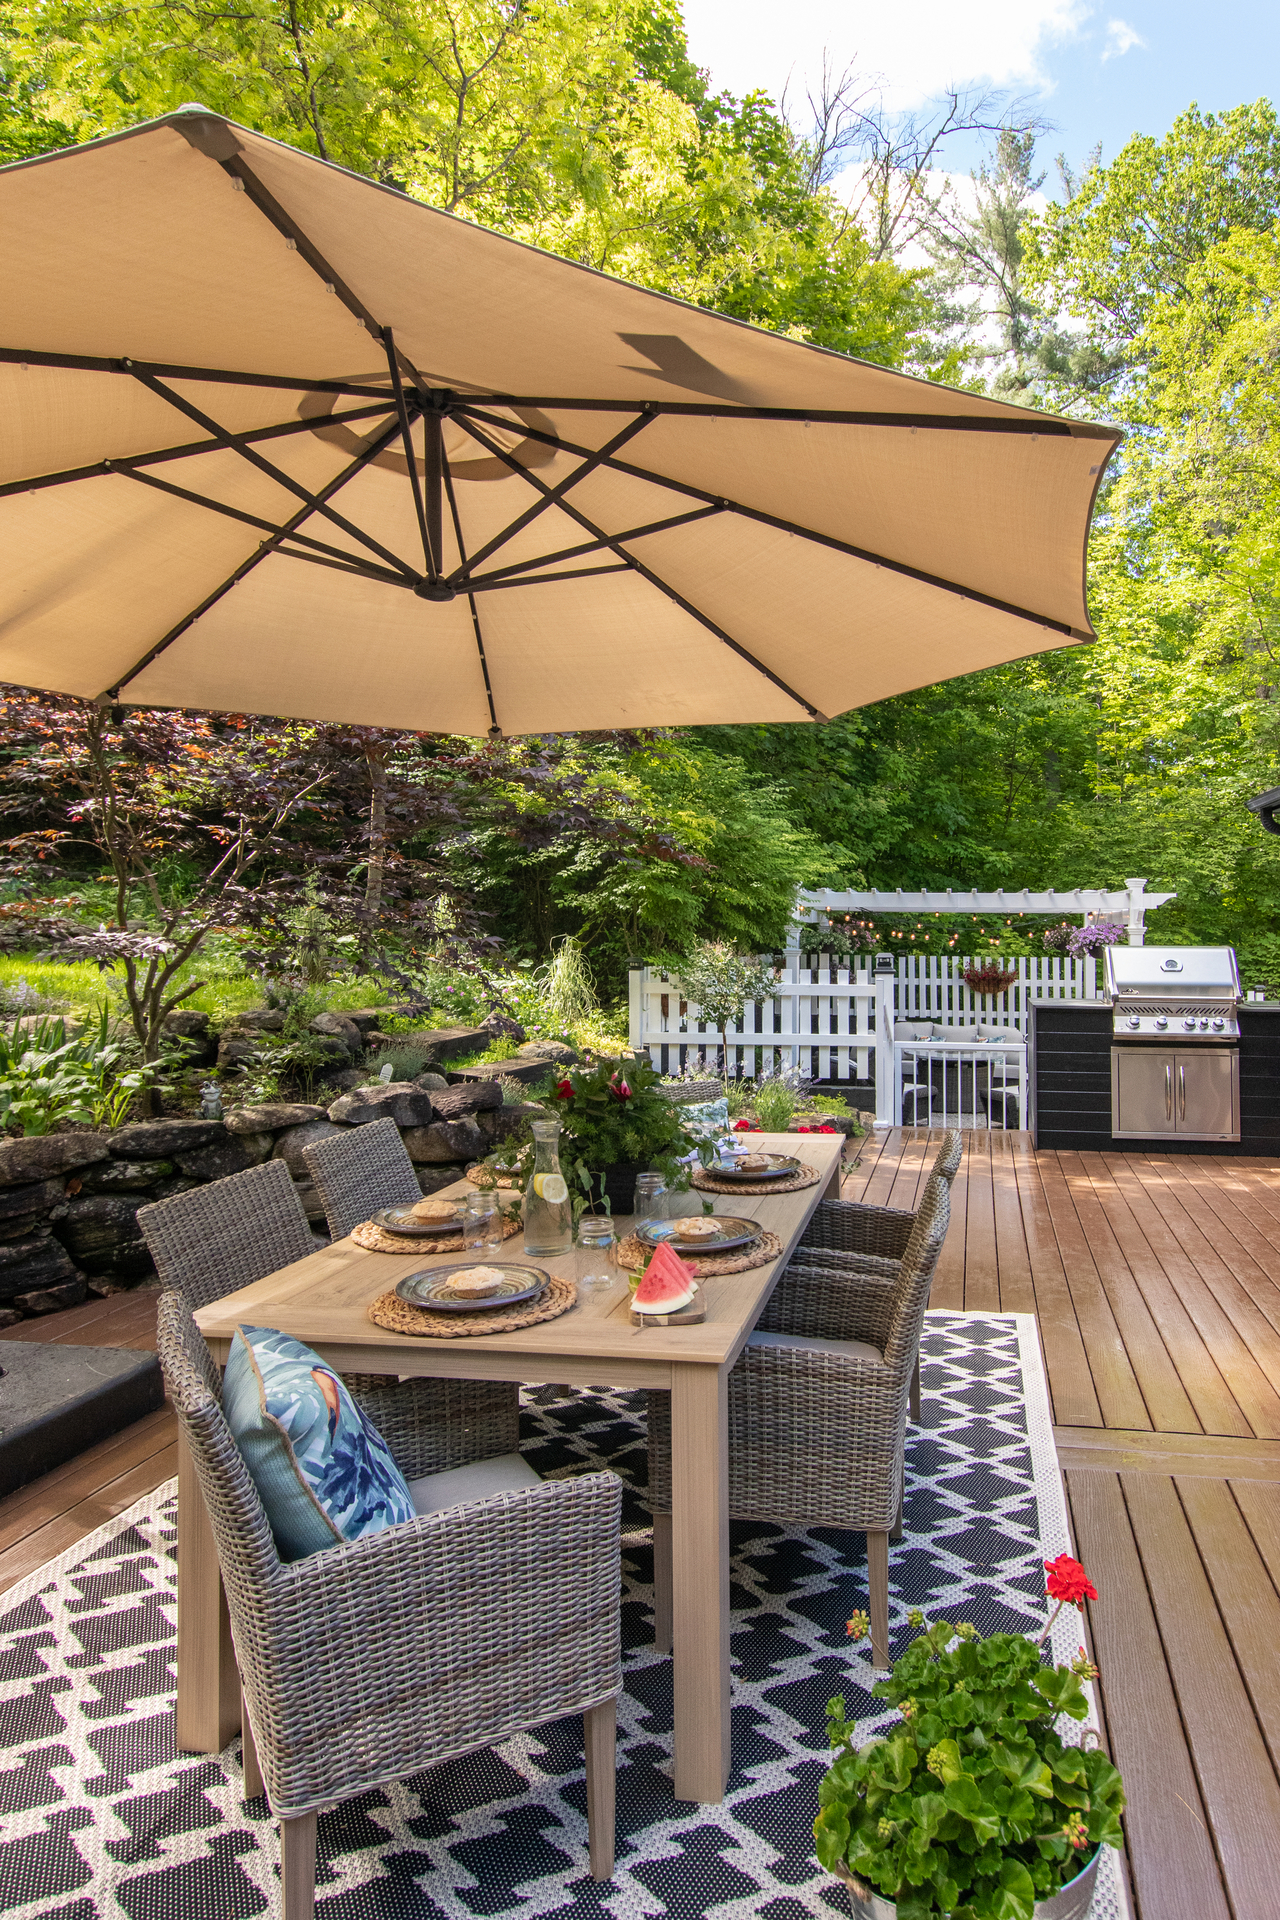 Our Backyard: Outdoor Living with Canadian TIre - Bonjour ...